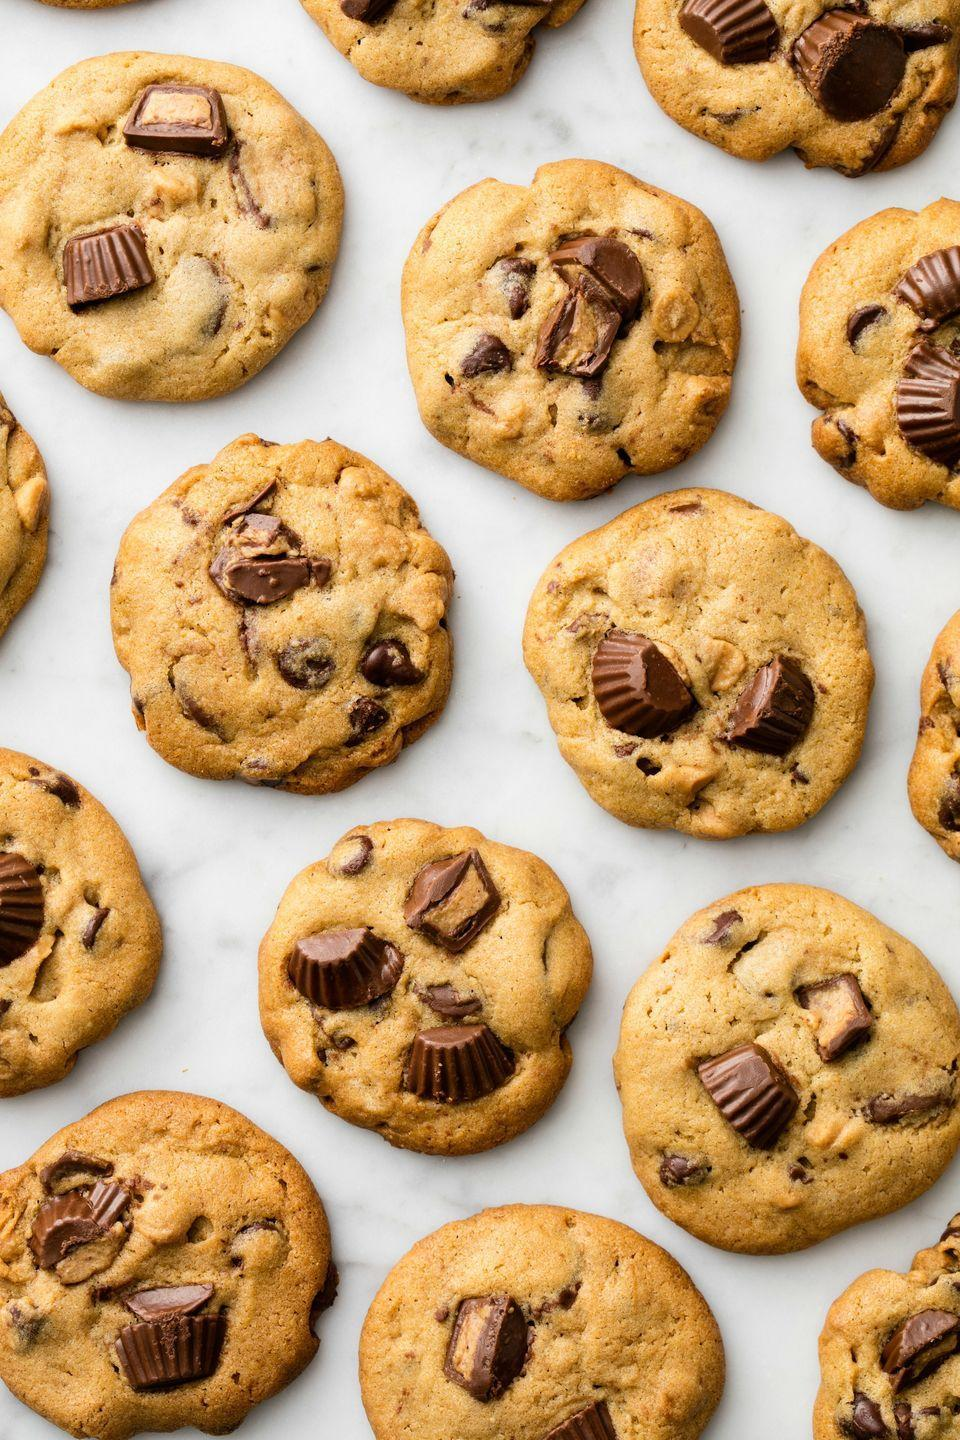 "<p>Peanut butter cookies are living their best life.</p><p>Get the recipe from <a href=""https://www.delish.com/cooking/recipe-ideas/recipes/a50449/reeses-chip-cookies-recipe/"" rel=""nofollow noopener"" target=""_blank"" data-ylk=""slk:Delish"" class=""link rapid-noclick-resp"">Delish</a>.</p>"